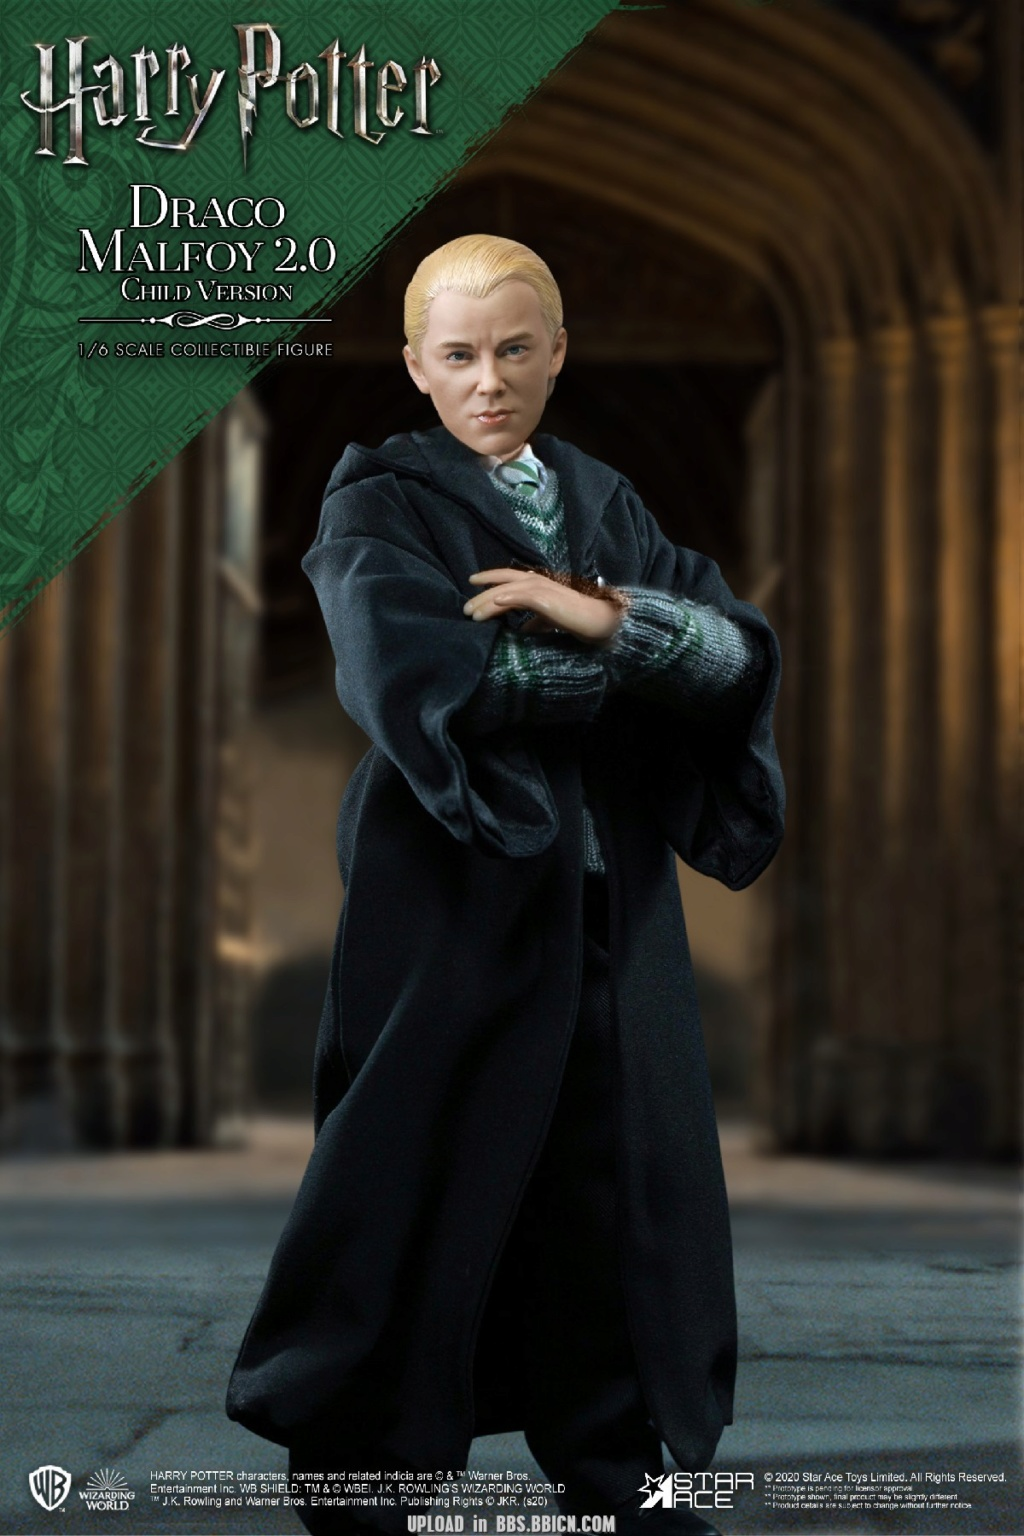 DracoMalfoy2 - NEW PRODUCT: STAR ACE Toys: 1/6 Harry Potter + Malfoy 2.0 Playing Set & Single & Uniform Edition 17082010